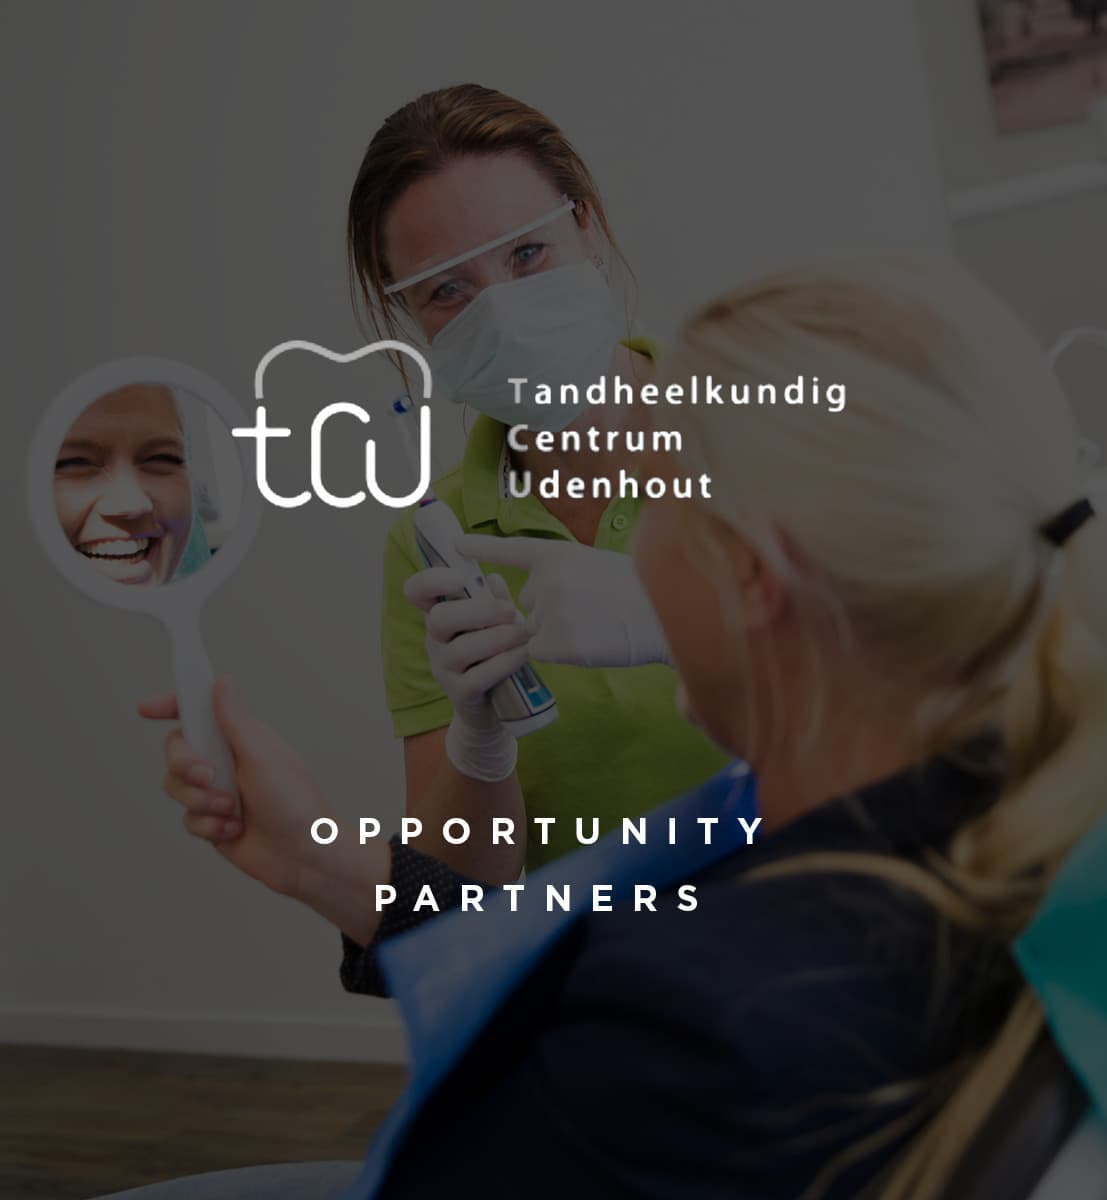 DEX international M&A advised Tandheelkundig Centrum Udenhout on the sale to Opportunity Partners